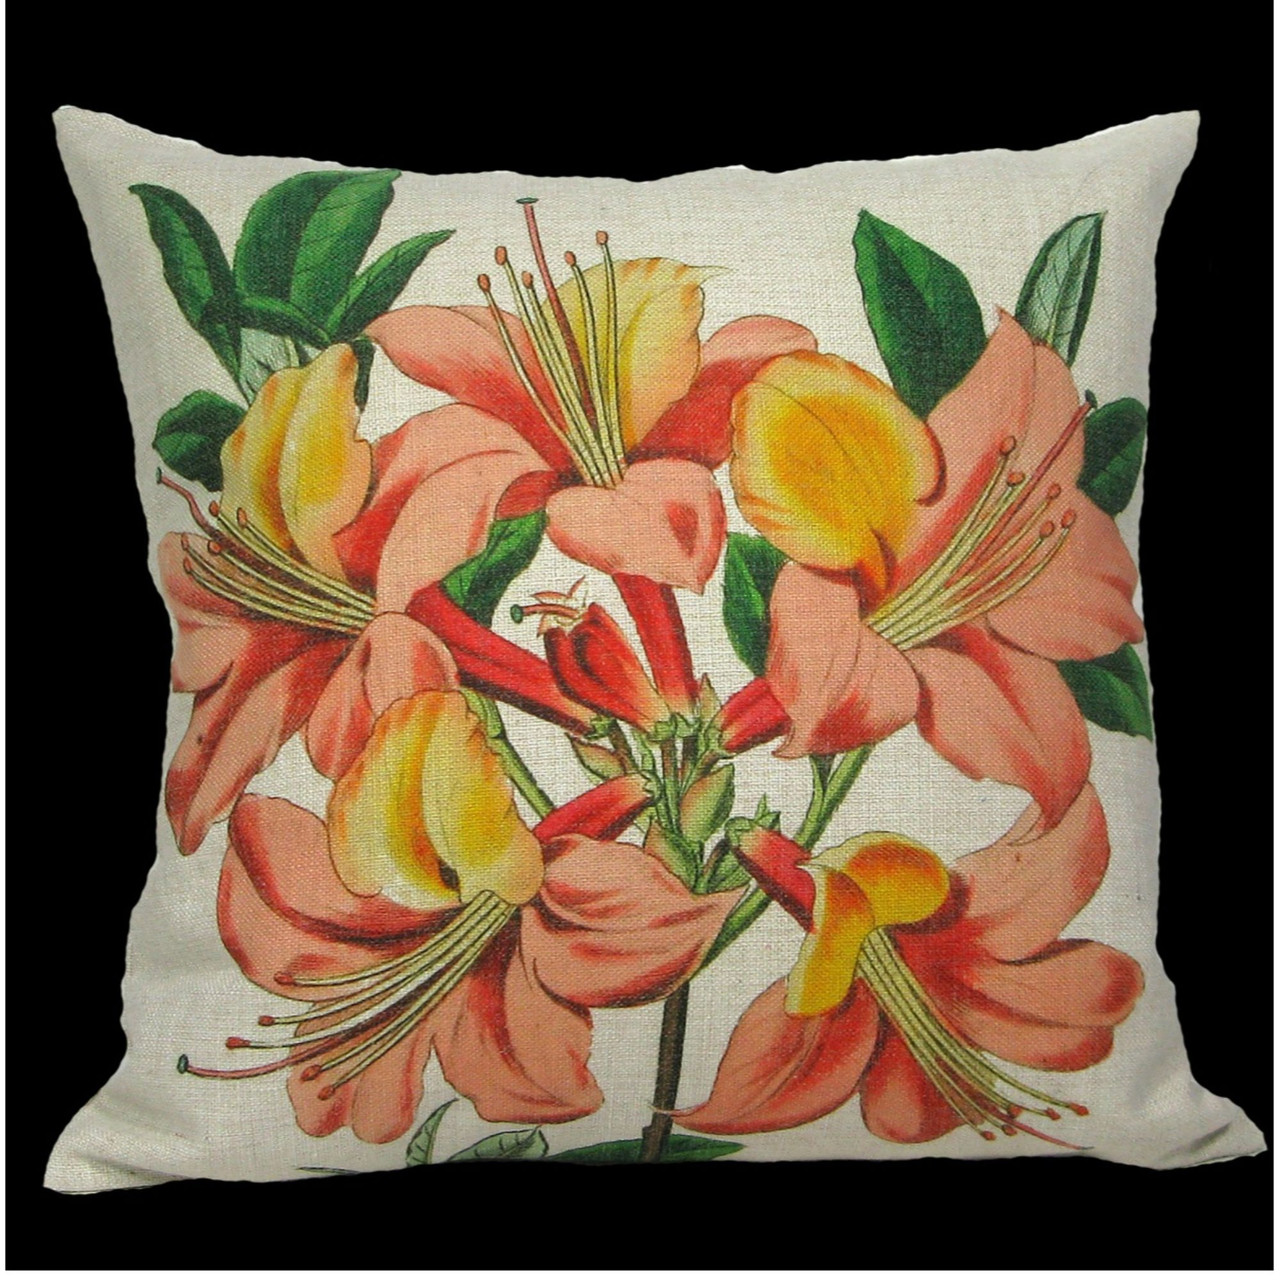 18 Green Orange Floral Lily Square Throw Pillow Cover Christmas Central